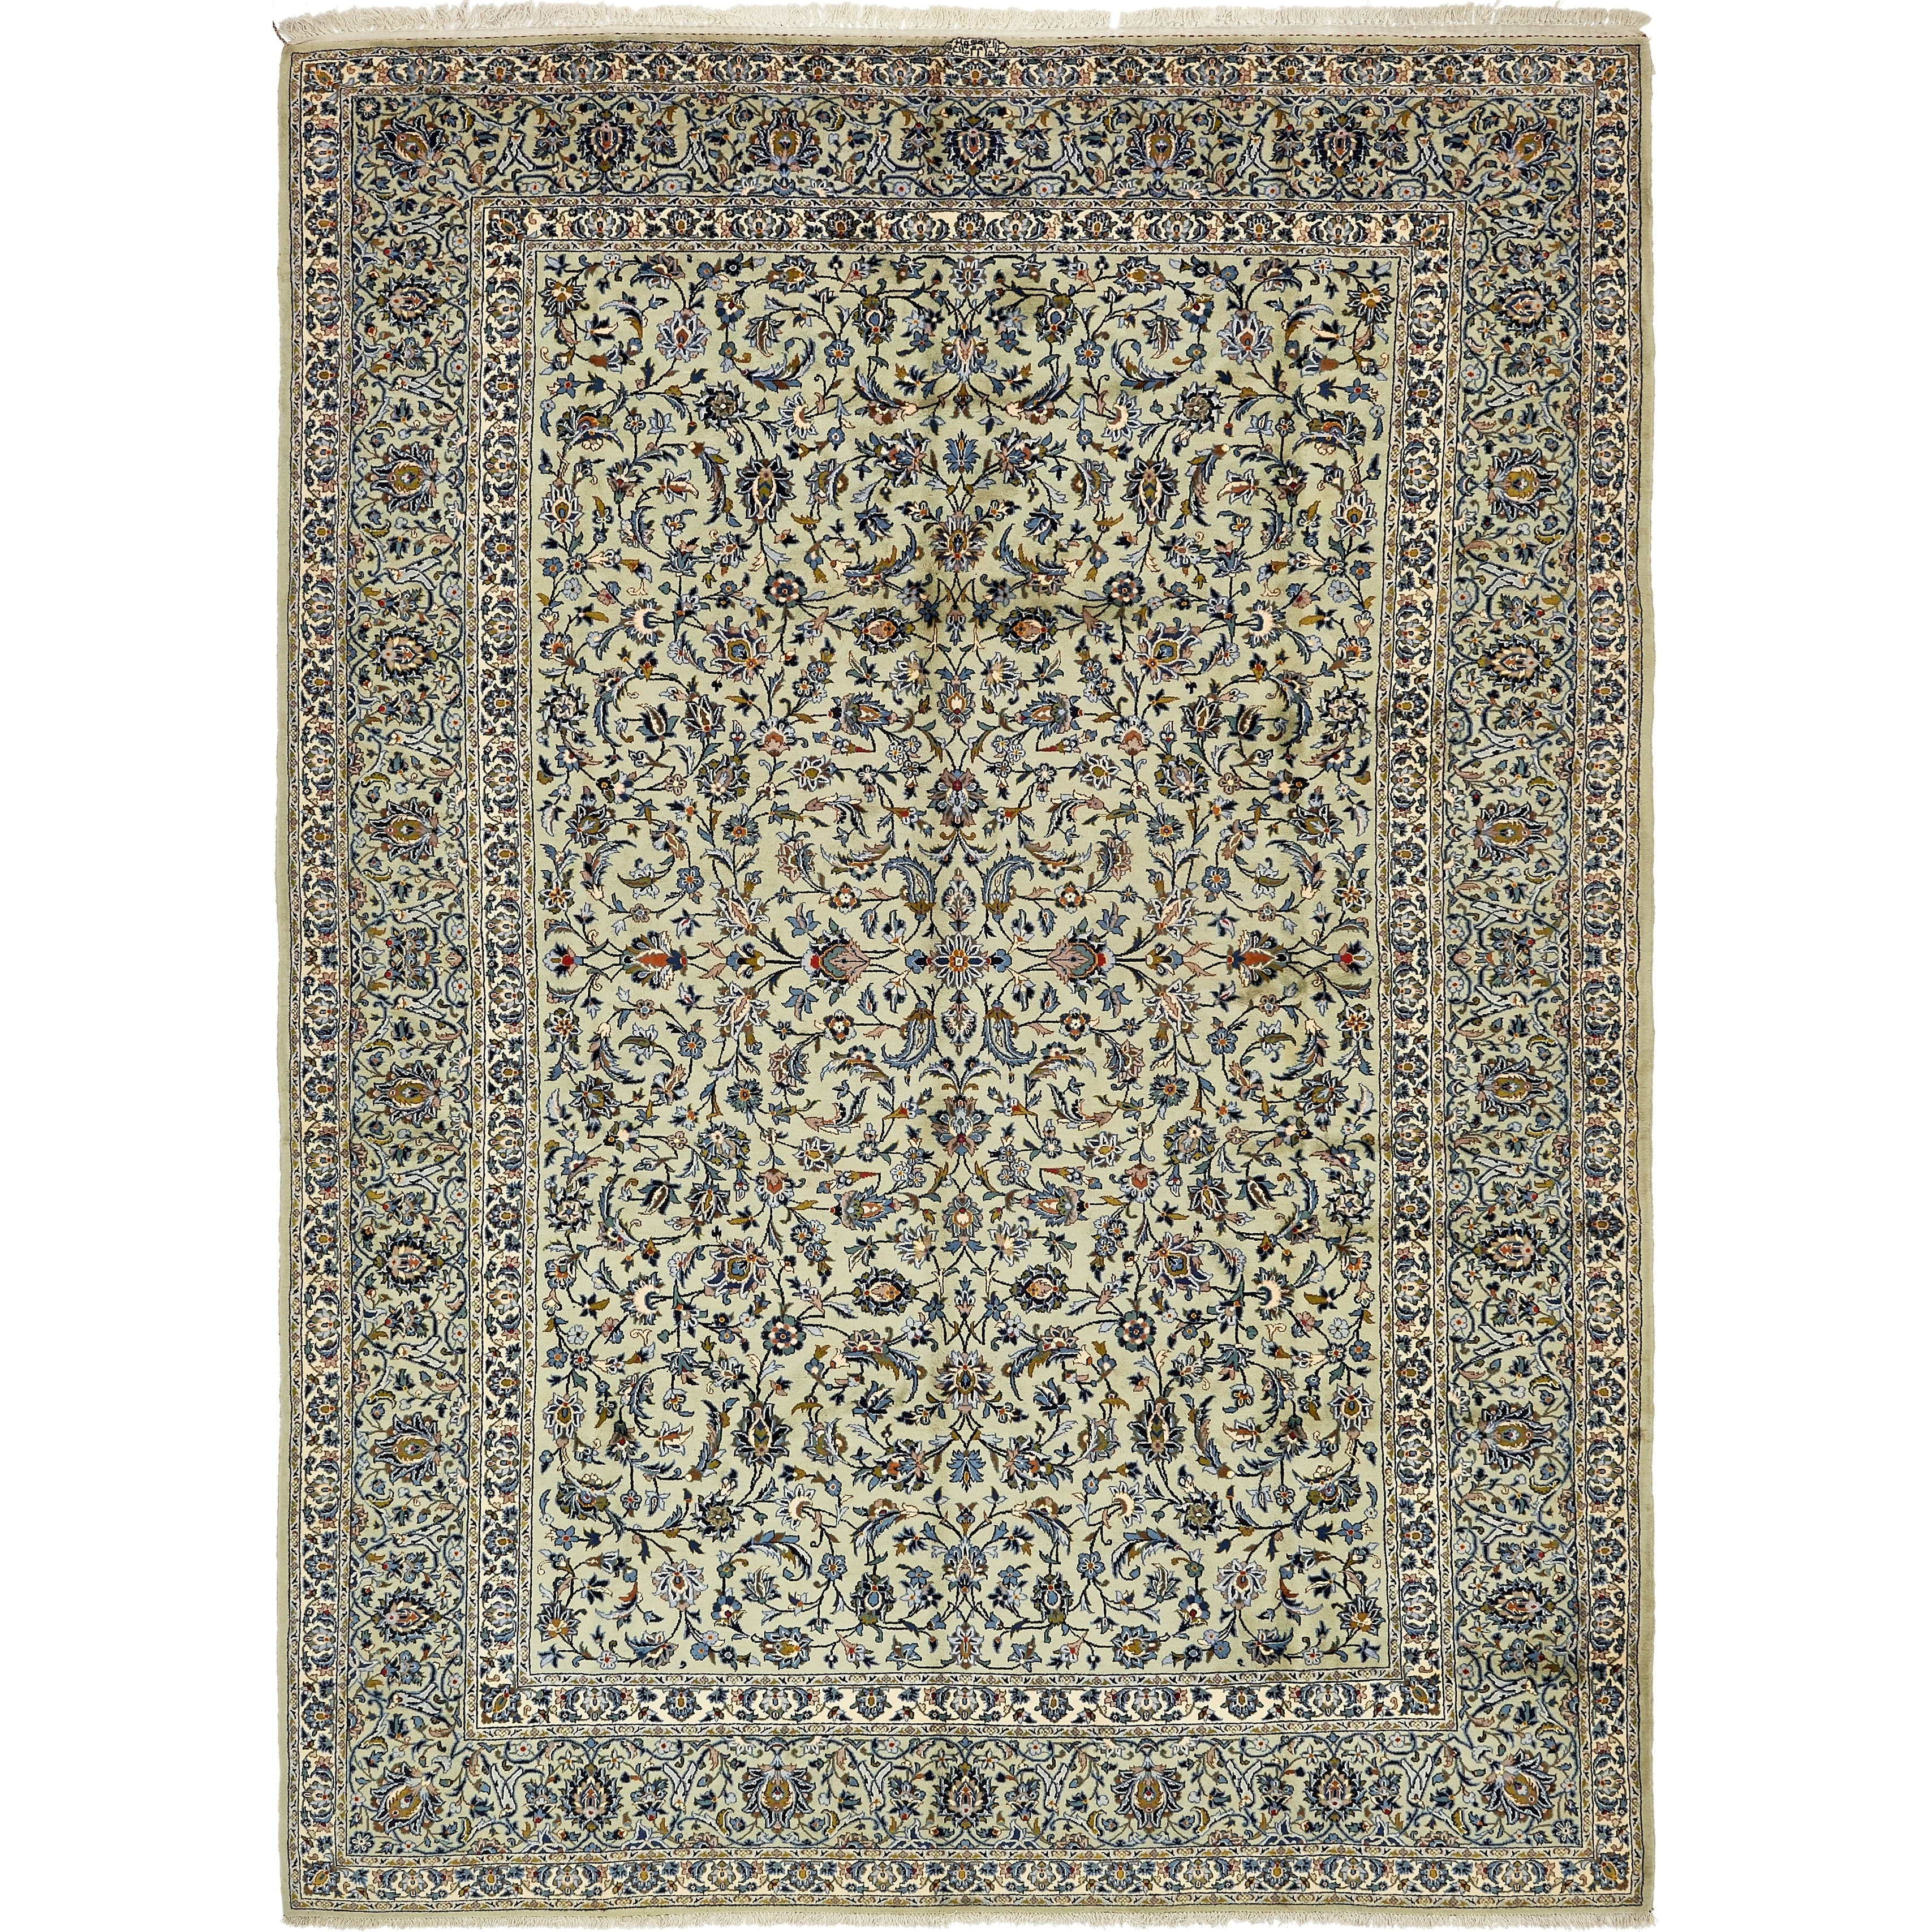 Hand Knotted Kashan Semi Antique Wool Area Rug - 9 x 12 10 (Green - 9 x 12 10)